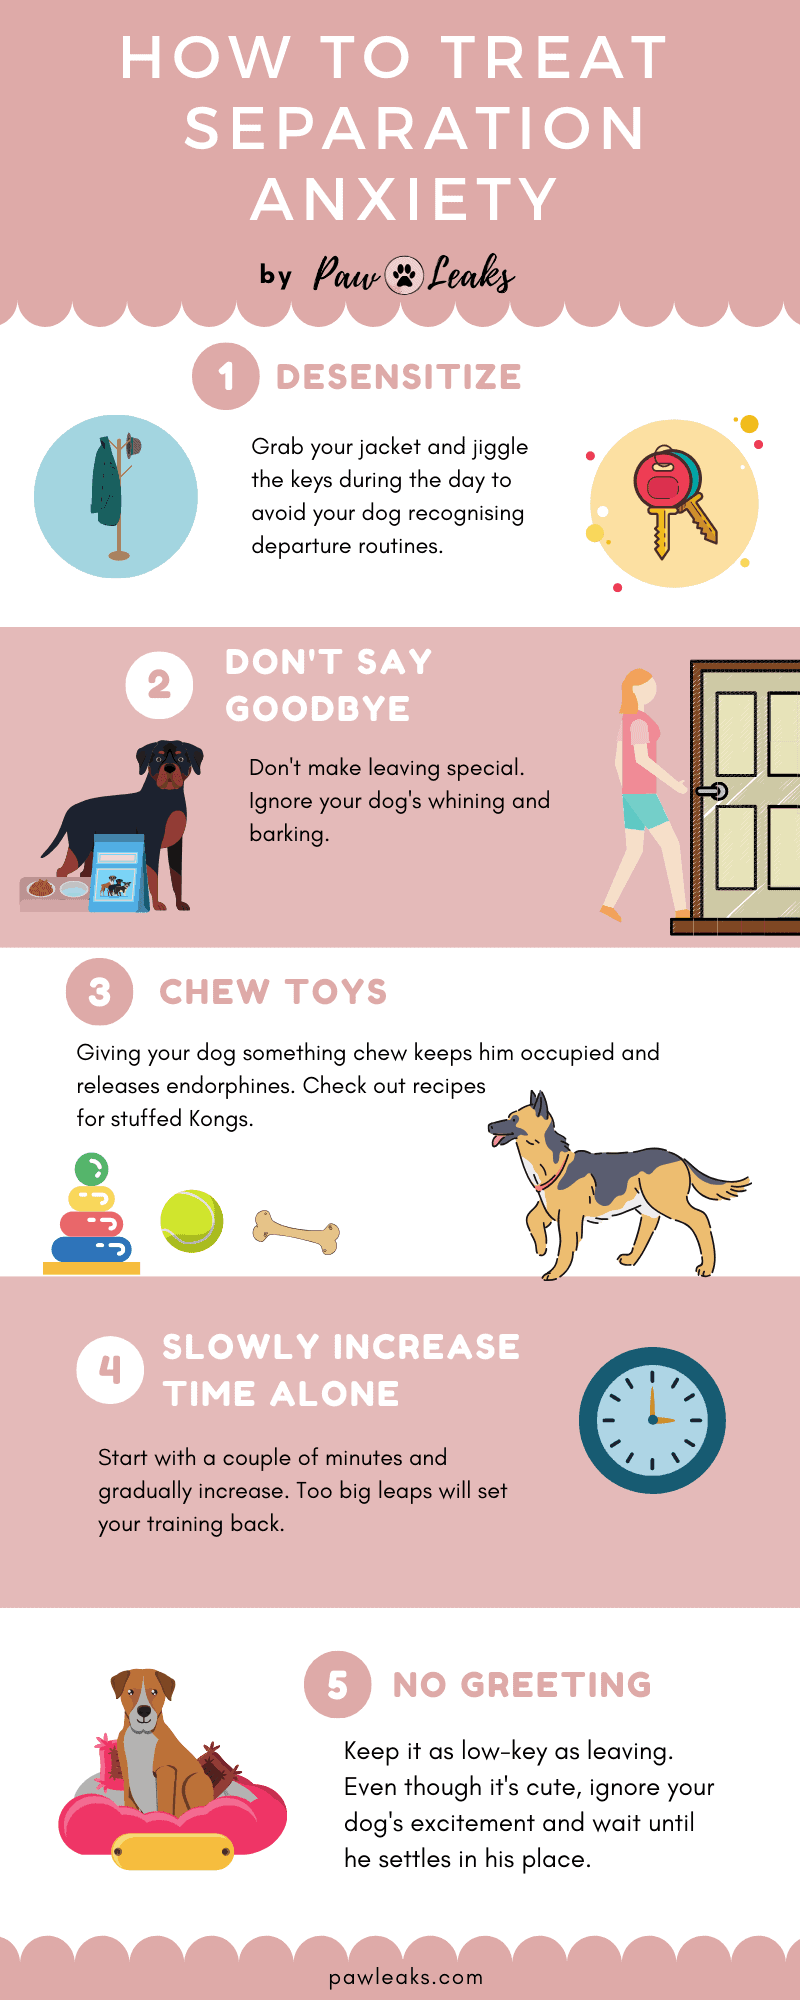 Infographic explaining how to treat dog separation anxiety.